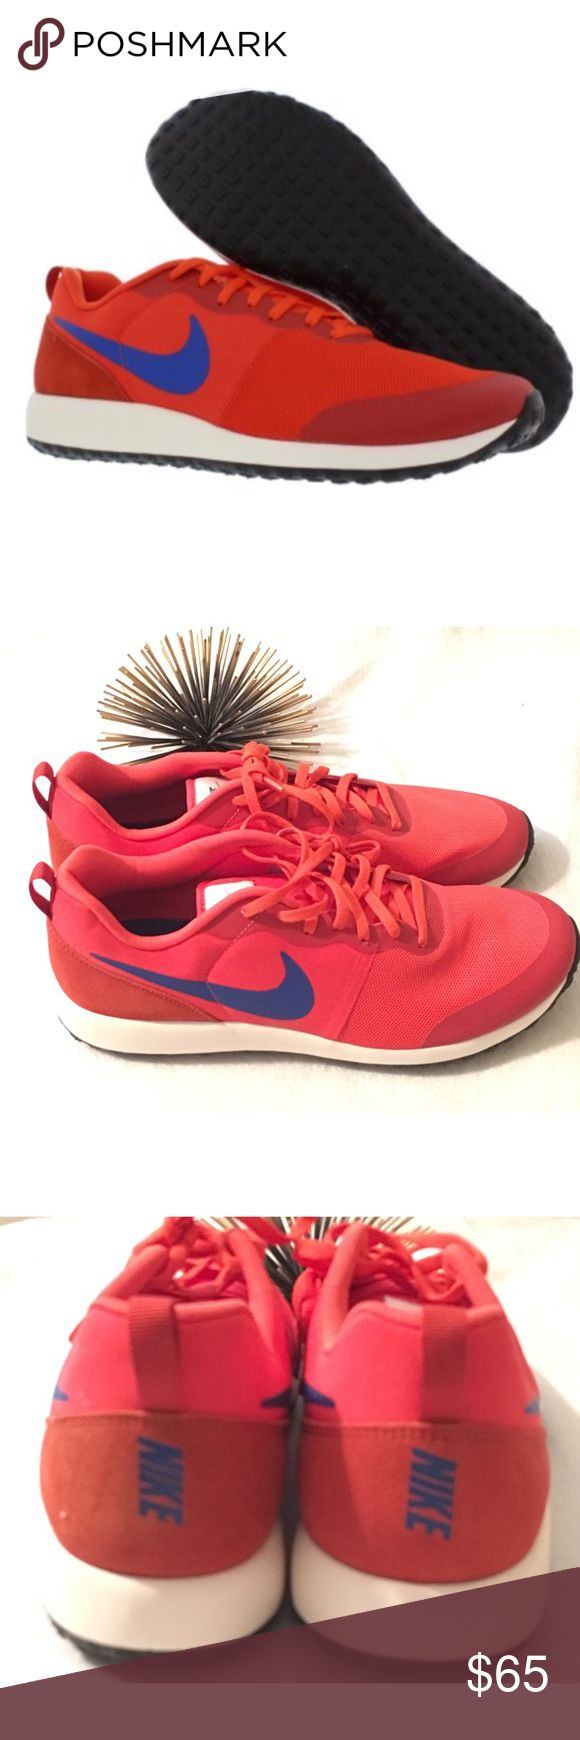 """Mens Nike Elite Shinshen Shoes Nike Elite Shinsen Men's Shoes Size Live the good life in the lightweight,comfortable Nike Elite Shinsen.It is designed for athletes engaging in all distance moves.Sporty style and blissful comfort are what these Nike Elite Shinsen shoes are designed to offer. Shinsen means """"new and fresh"""" in Japanese and that is just what some of the details bring to the otherwise old-school Nike Shinsen Shoe.Nike gives a waffle outsole for that back-in-the-day hit that…"""